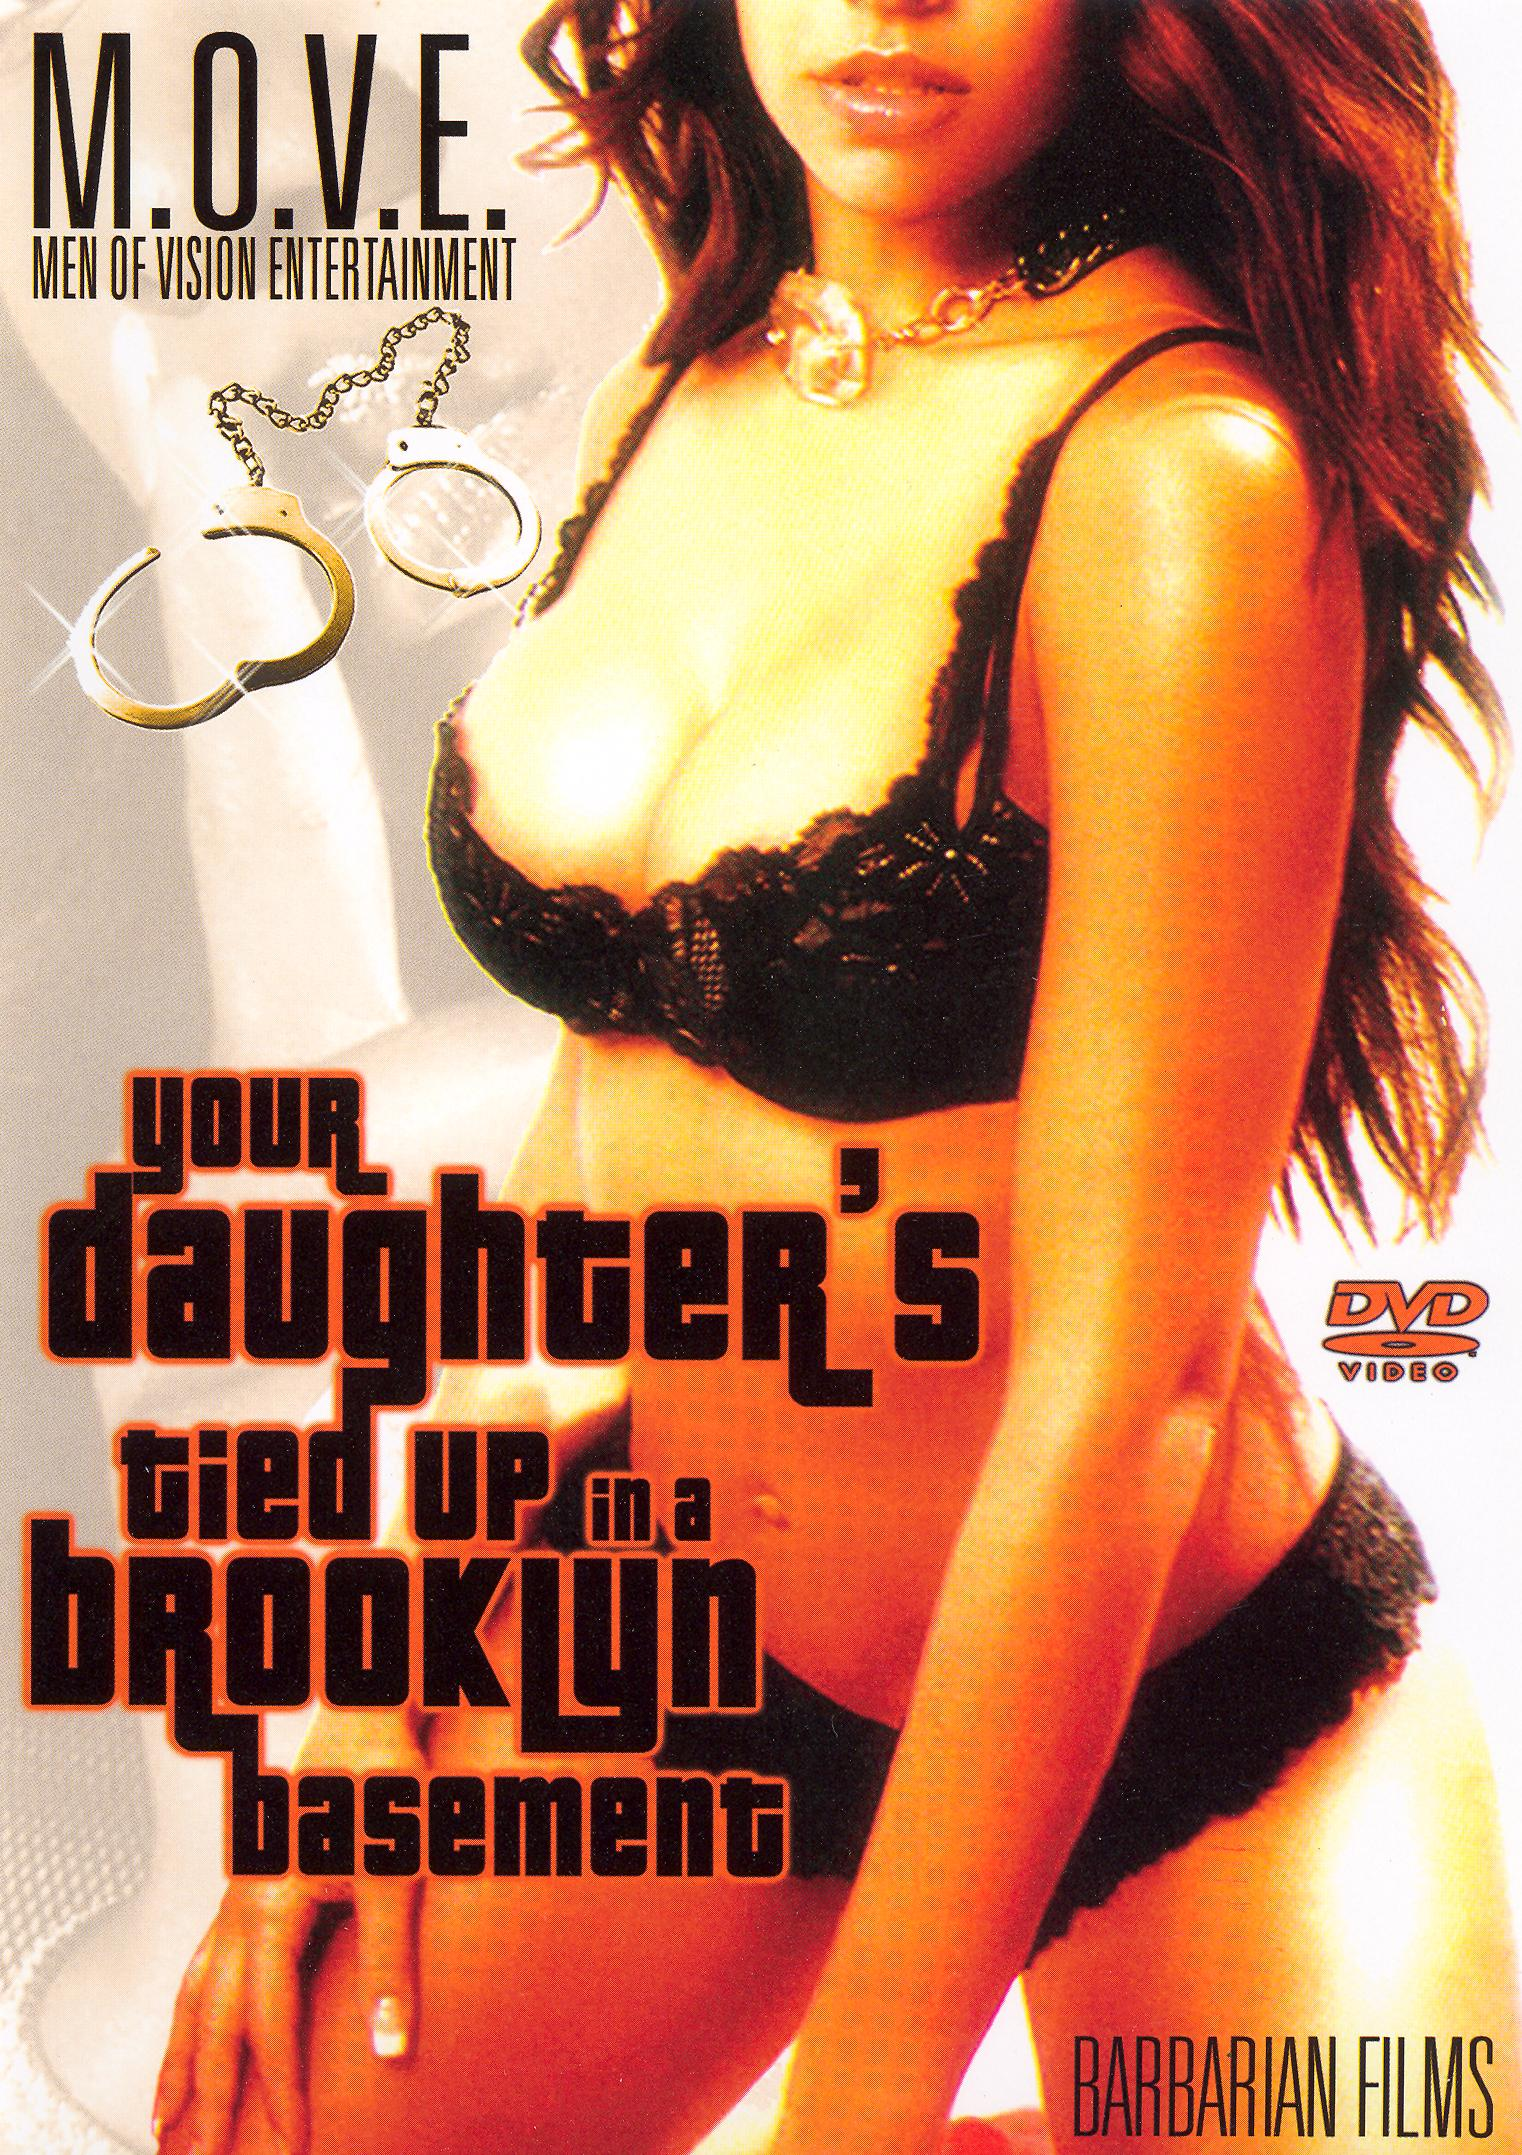 Your Daughter's Tied Up in a Brooklyn Basement